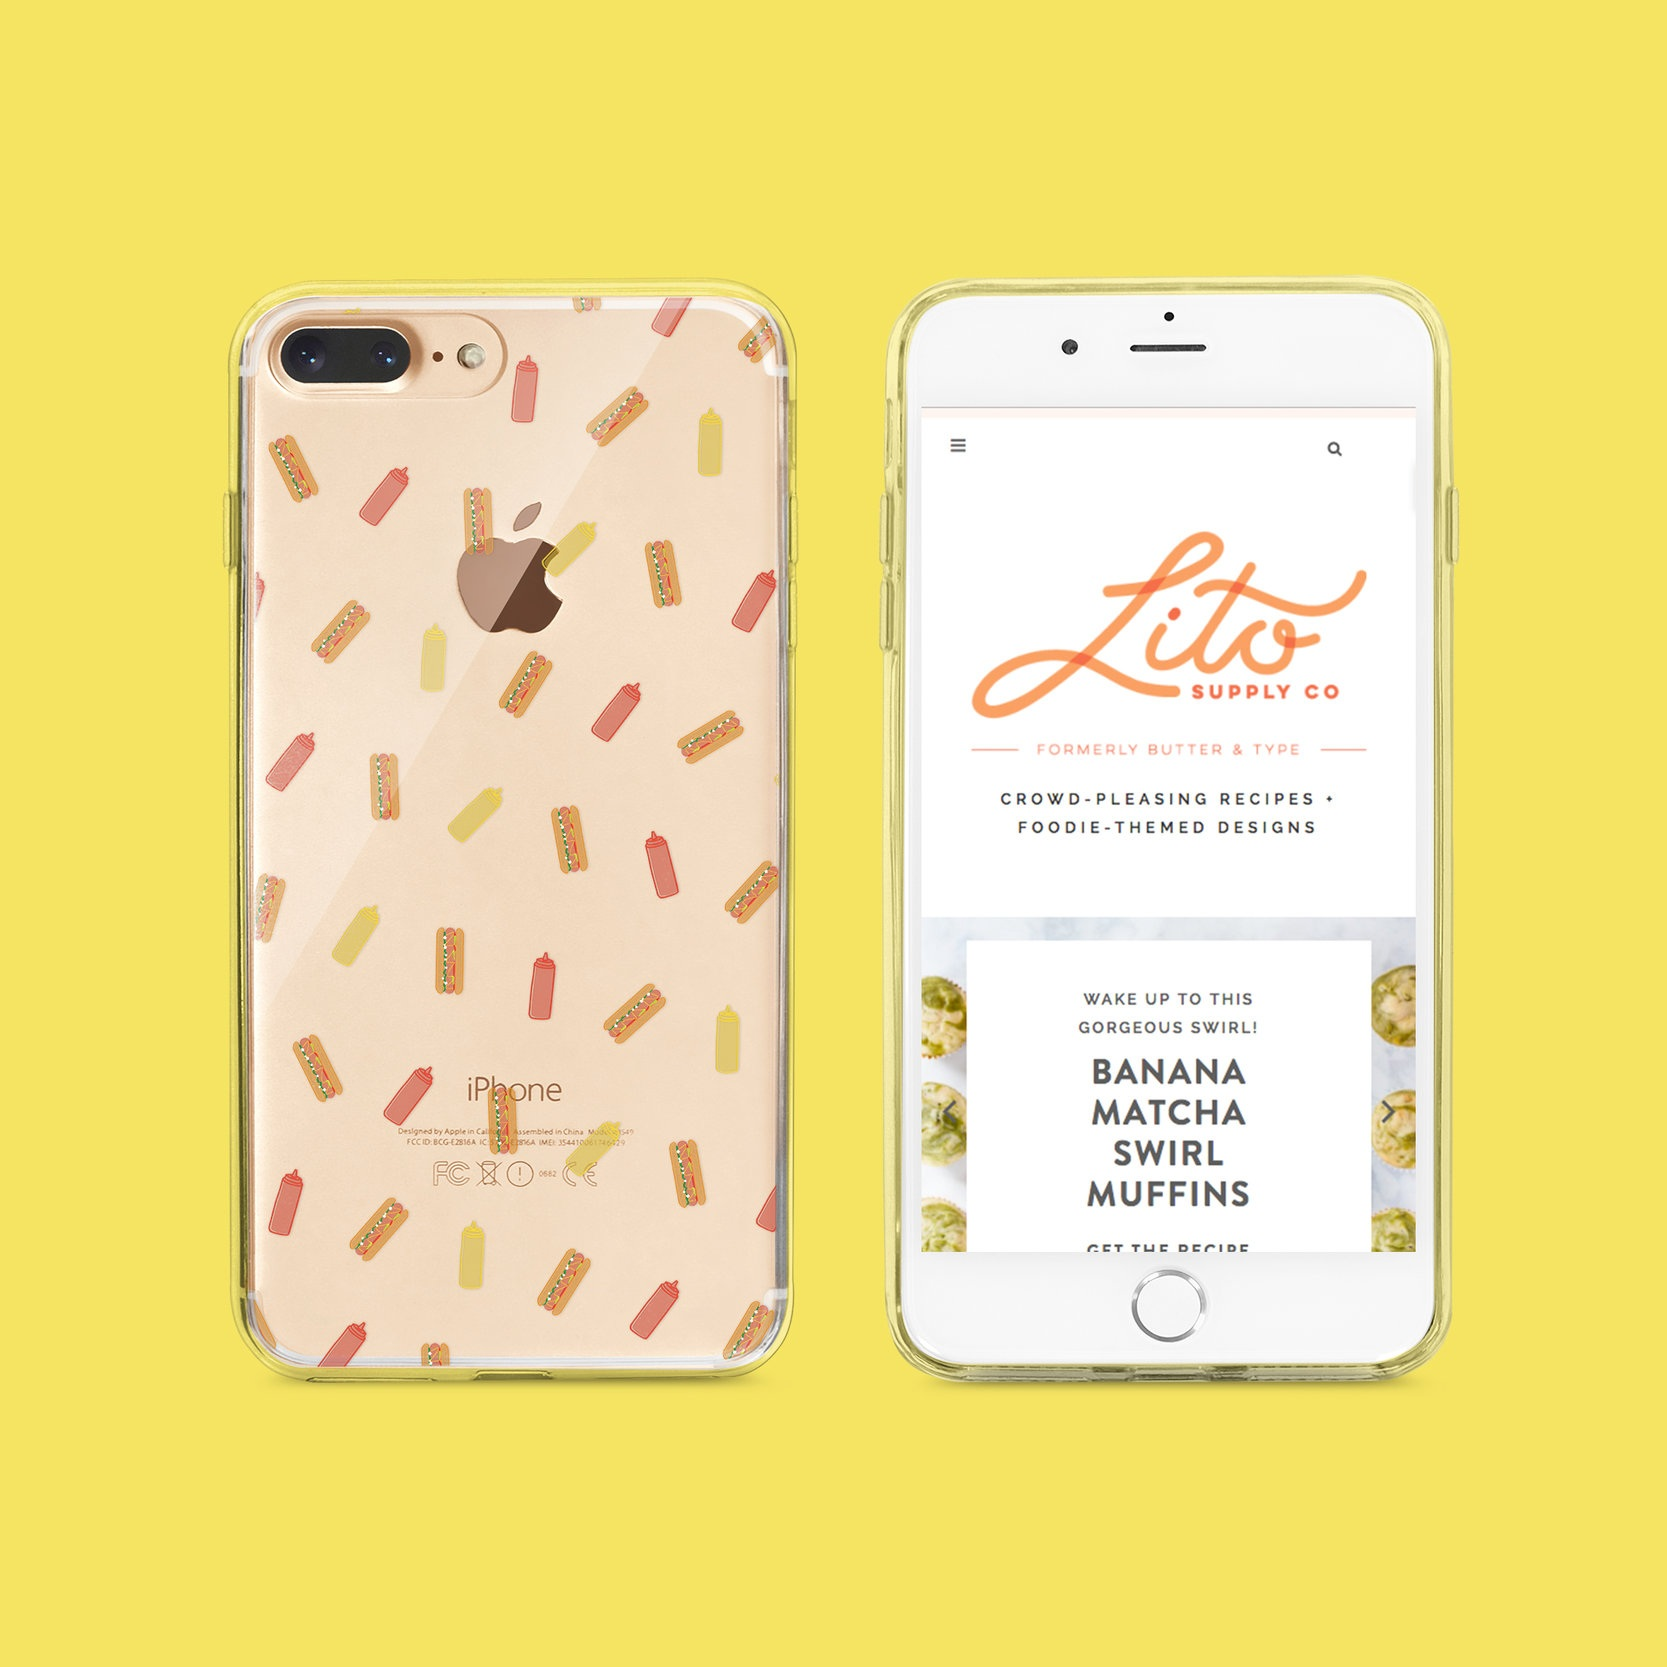 iPhone Cases - Product Design, Illustration